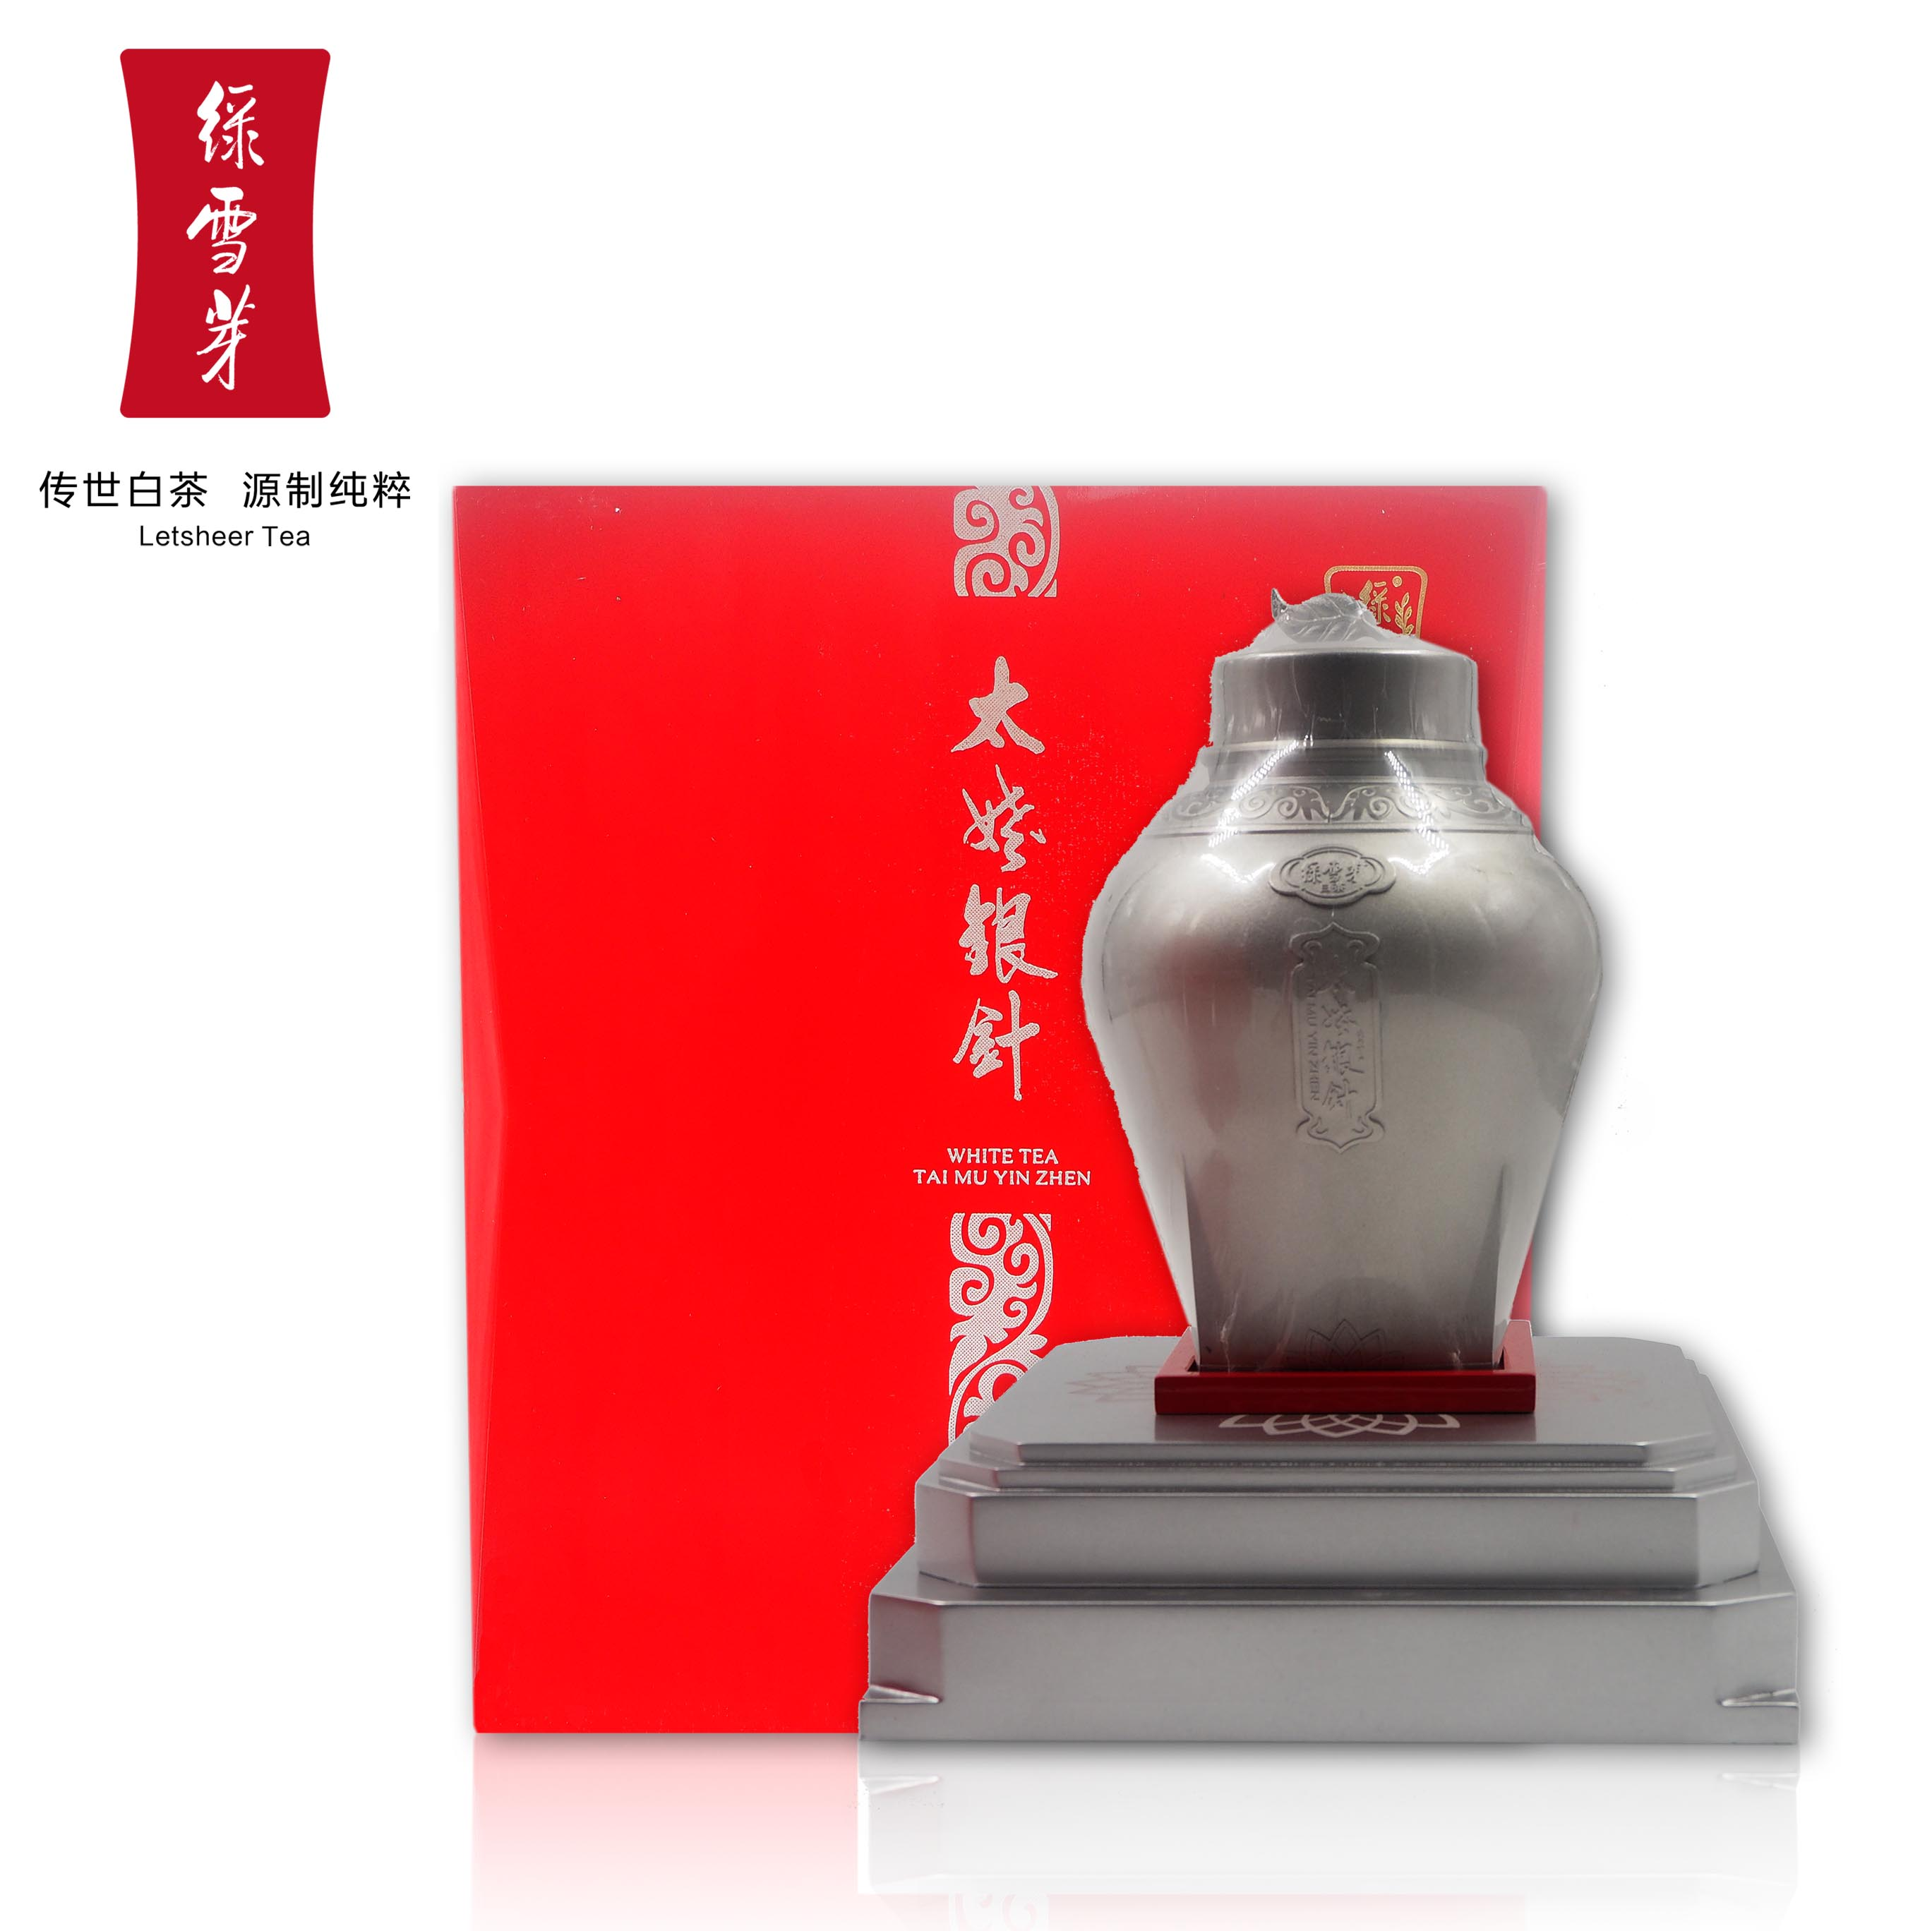 Green Snow Bud Tea Fuding White Tea Premium White Silver Needle Shang Shang Top Grade Tai Yin Silver Needle Tin 210g